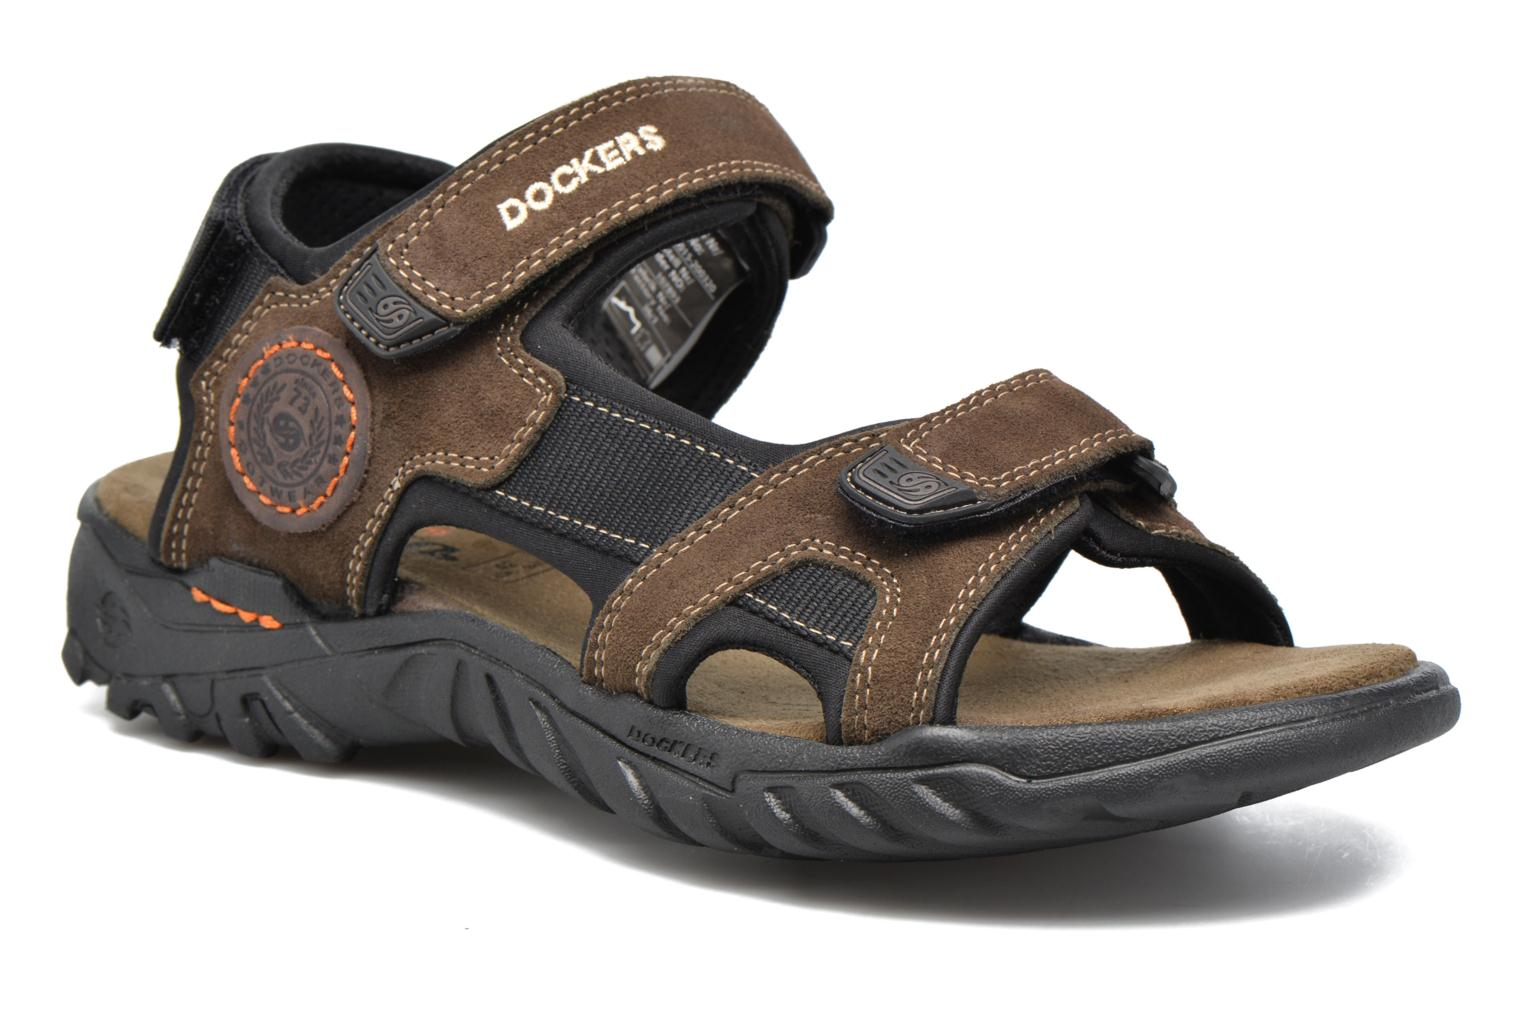 Marques Chaussure homme Dockers homme Léoni Cafe